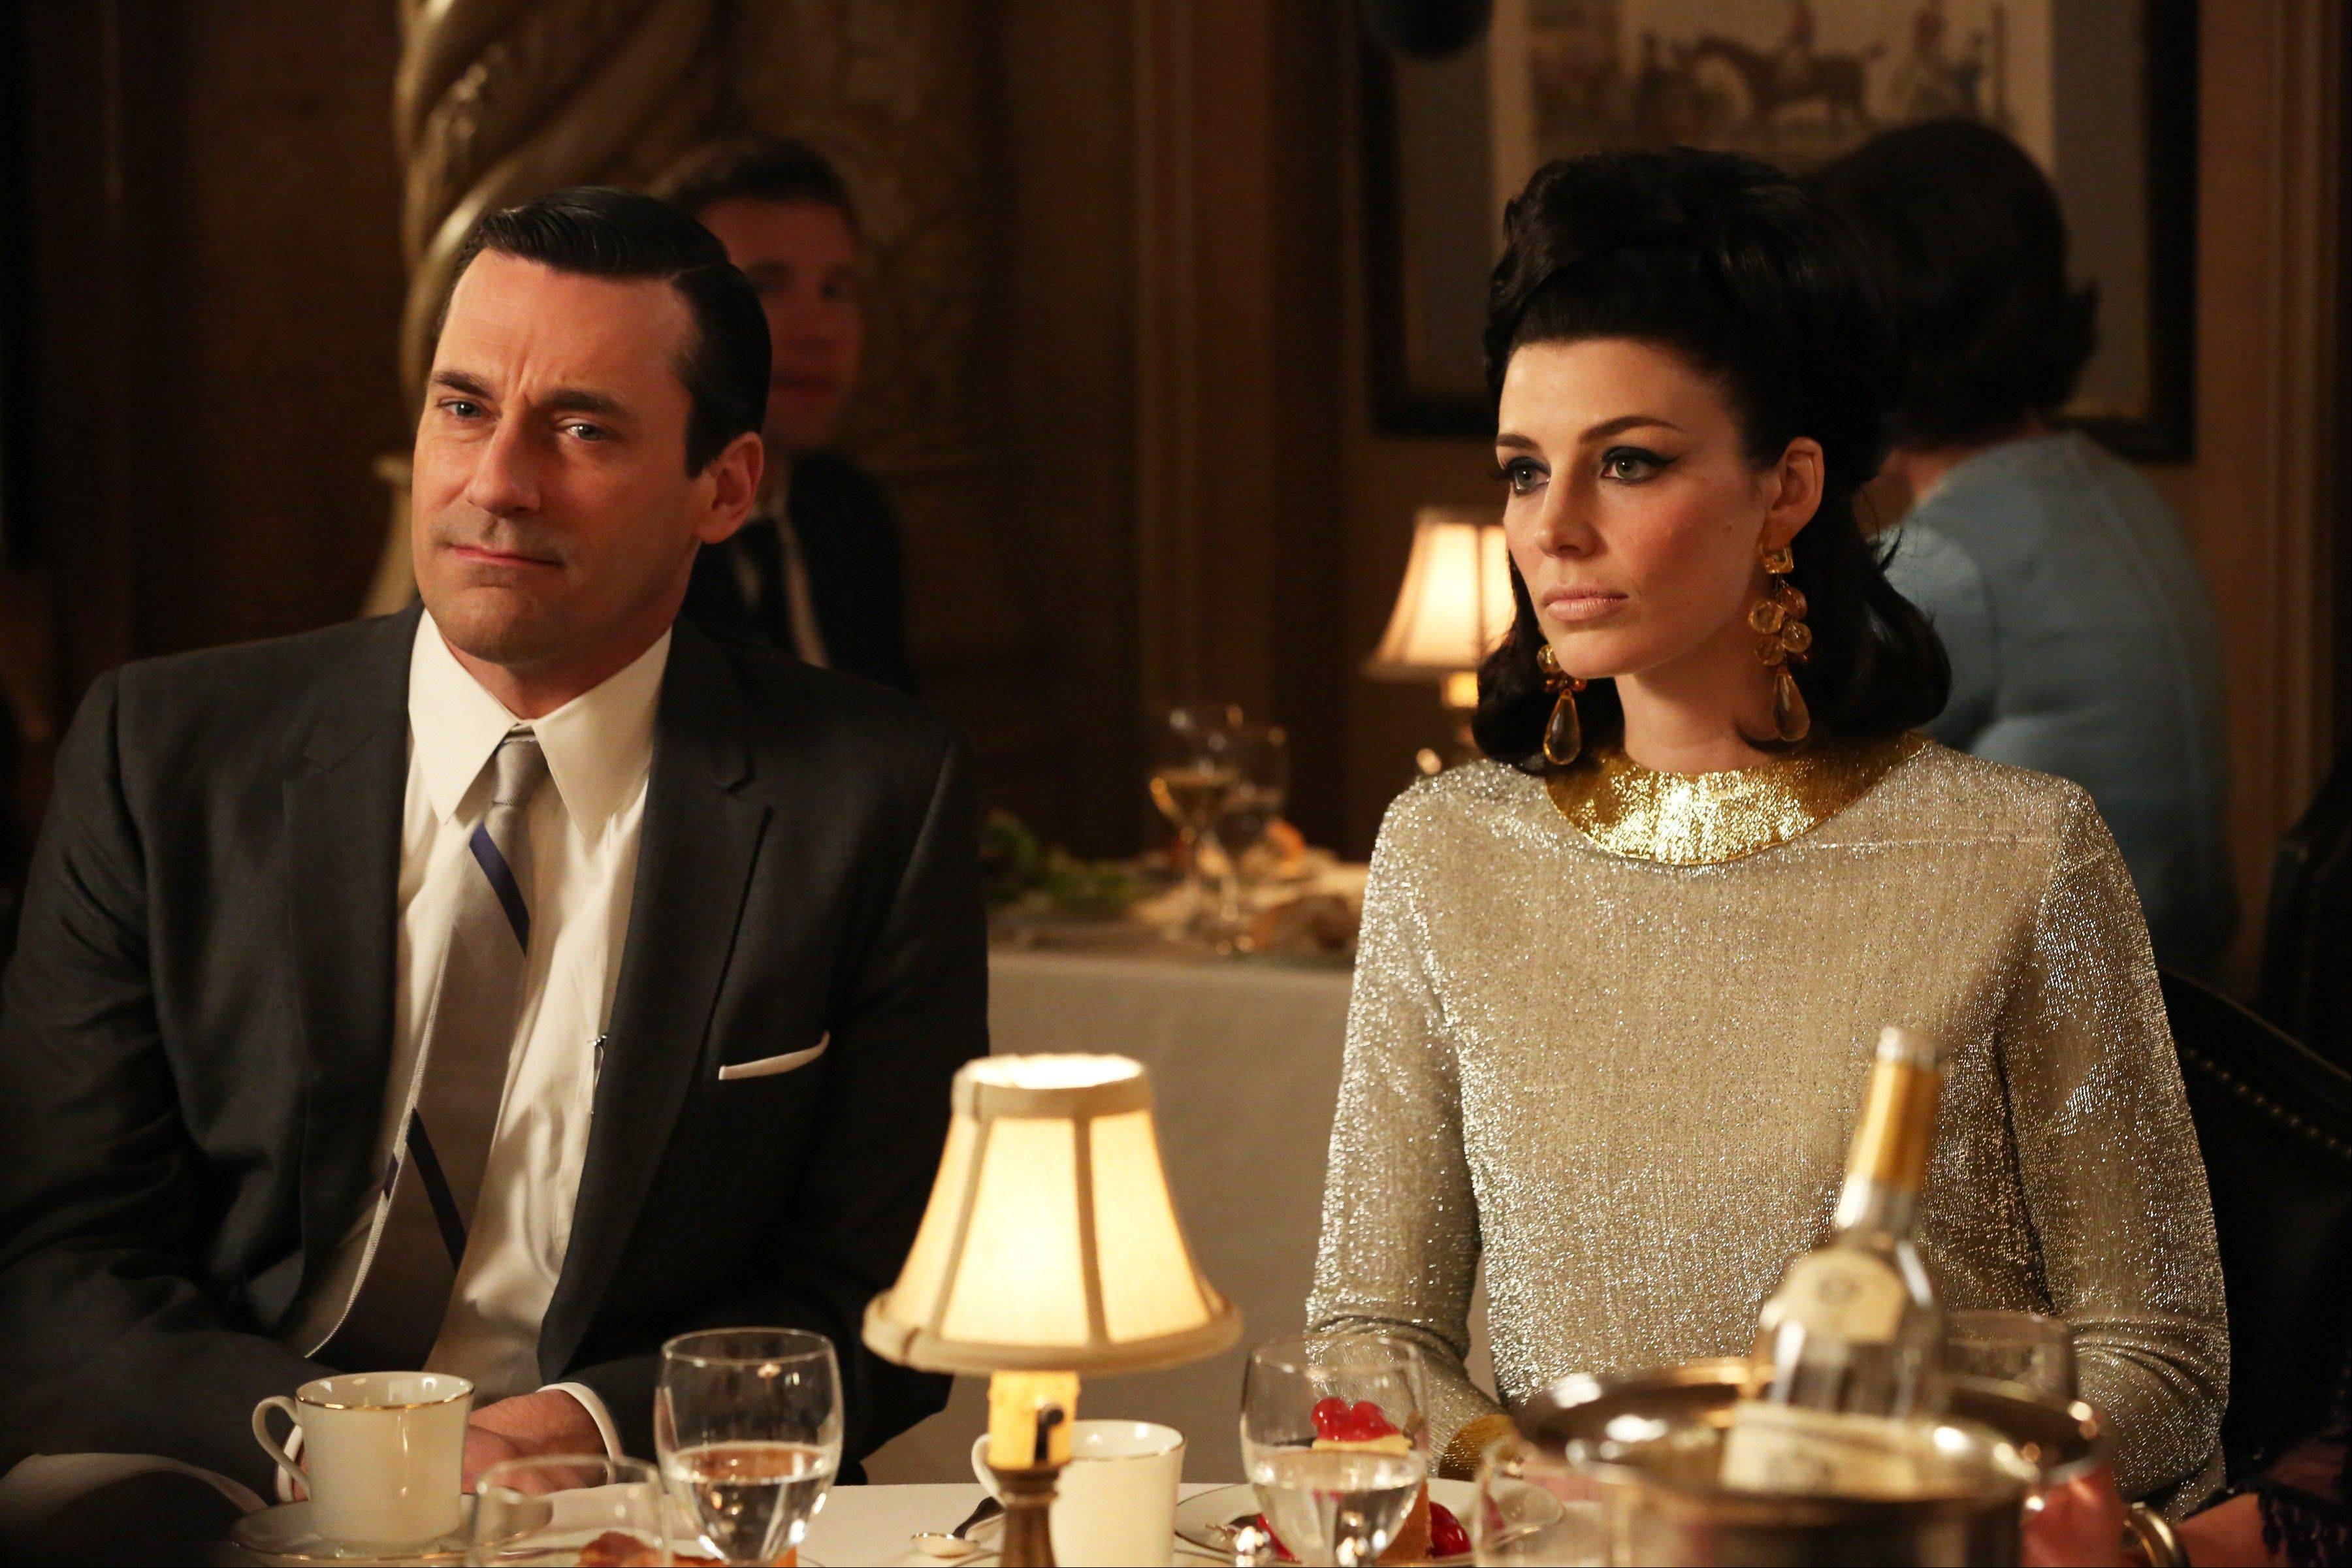 AMC is keeping �Mad Men� � starring Jon Hamm as Don Draper, left, and Jessica Pare as Megan Draper � around an extra year, expanding the final season of this acclaimed drama series to 14 episodes and portioning them equally in 2014 and 2015.